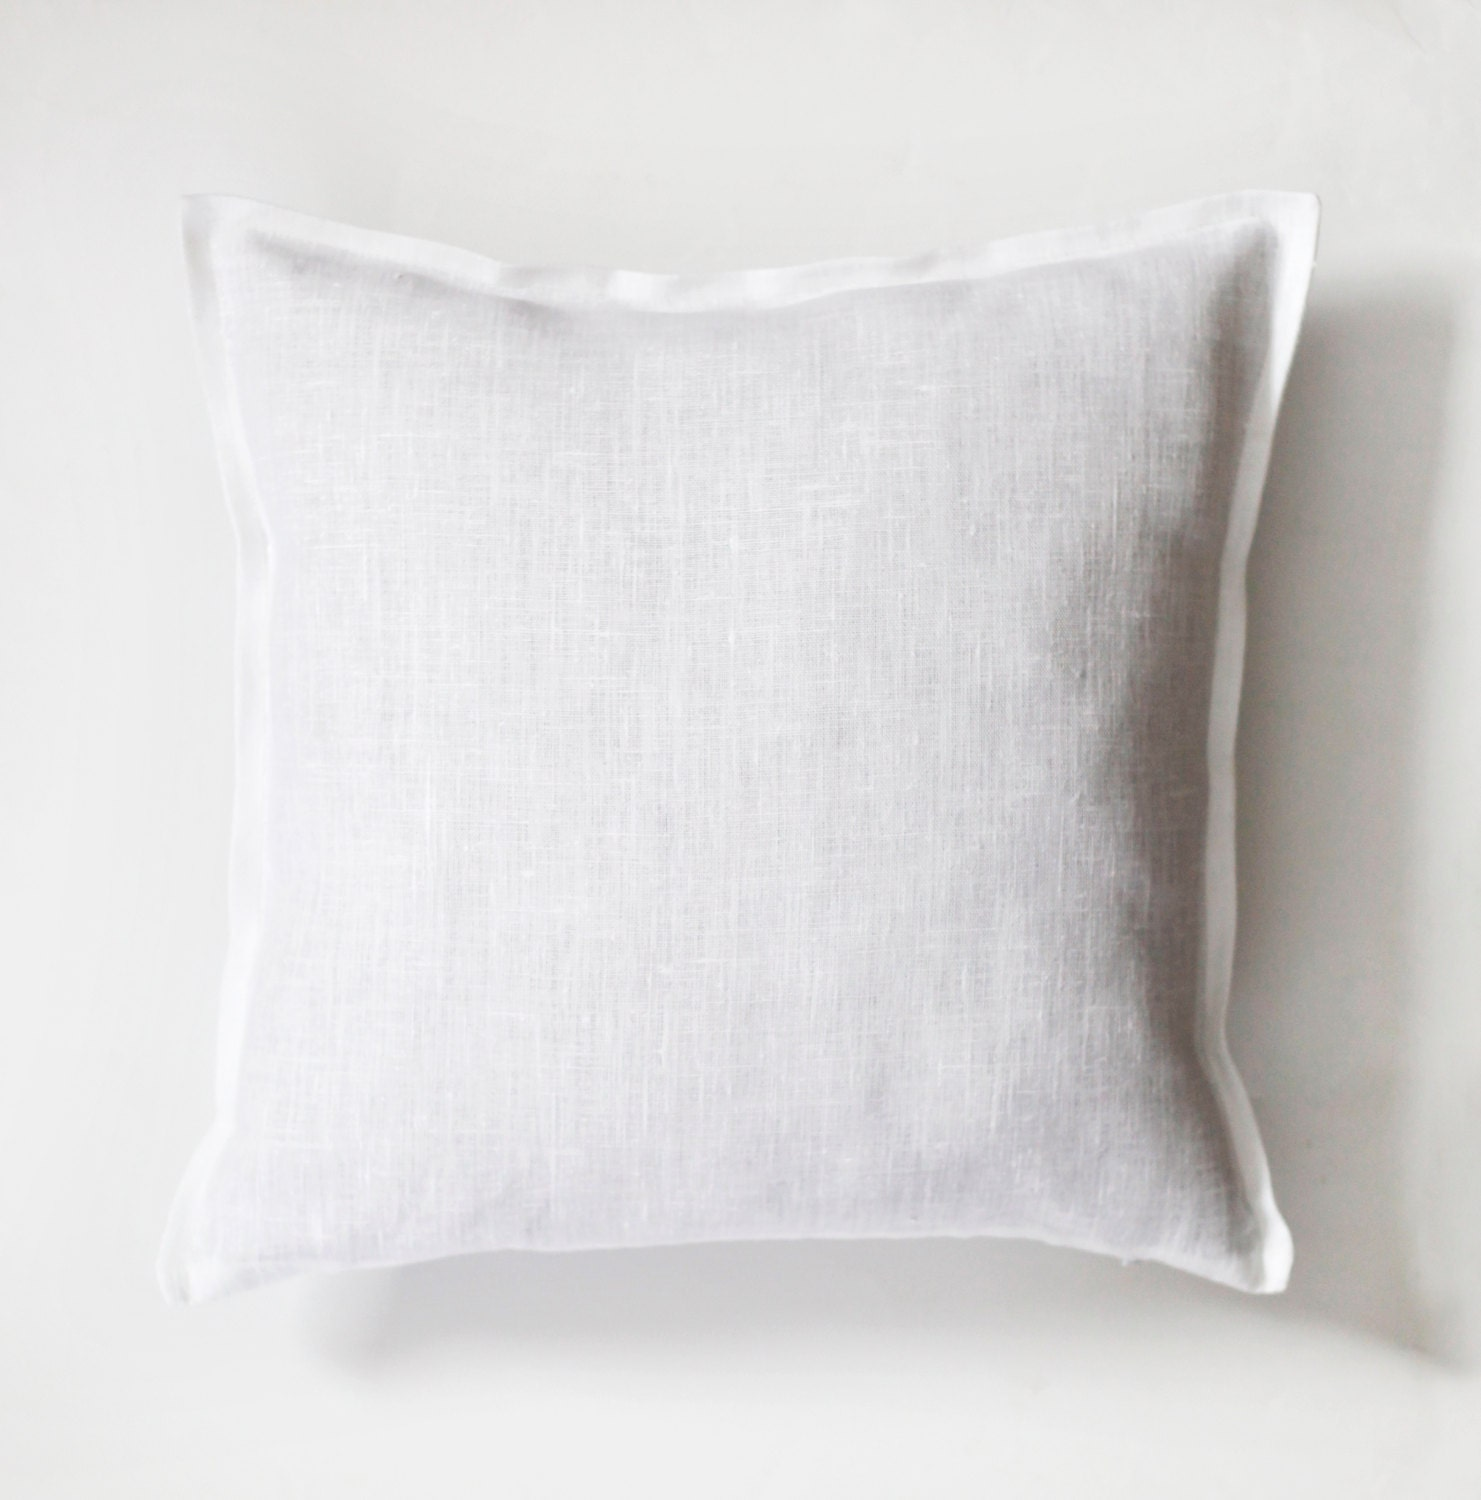 White linen king size shams decorative pillow covers set of